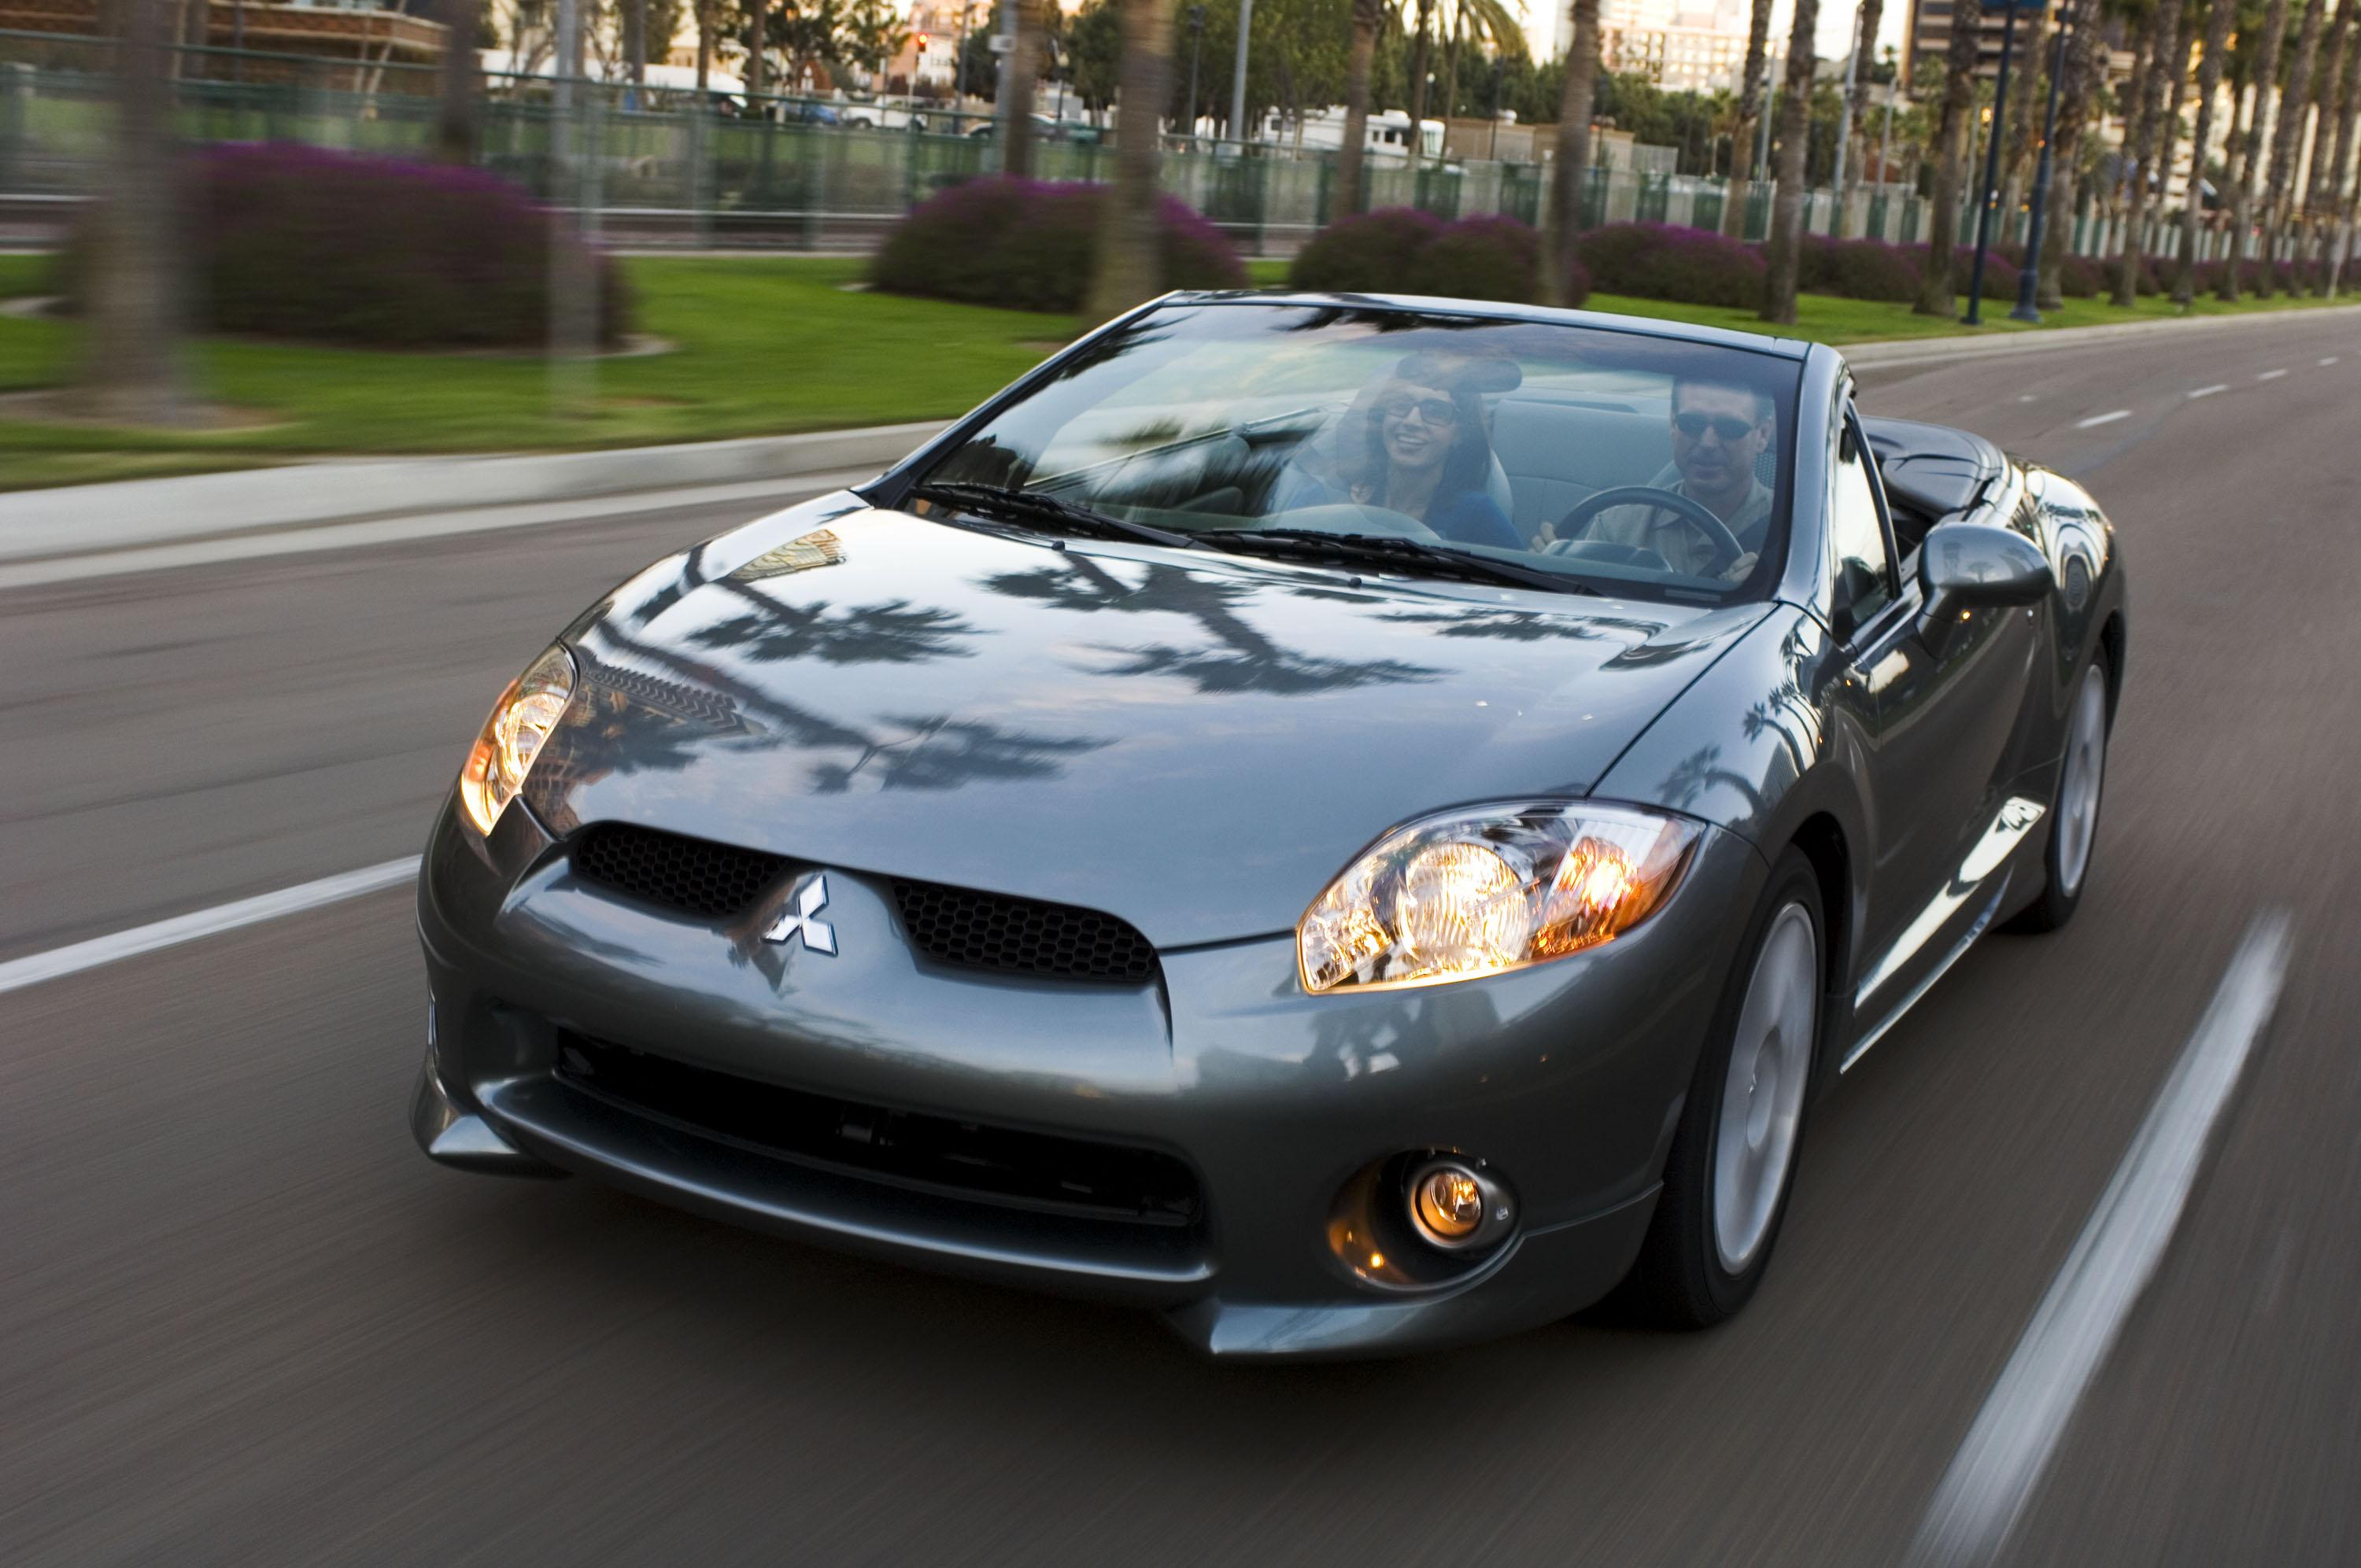 2007 Mitsubishi Eclipse Spyder | Top Speed. »